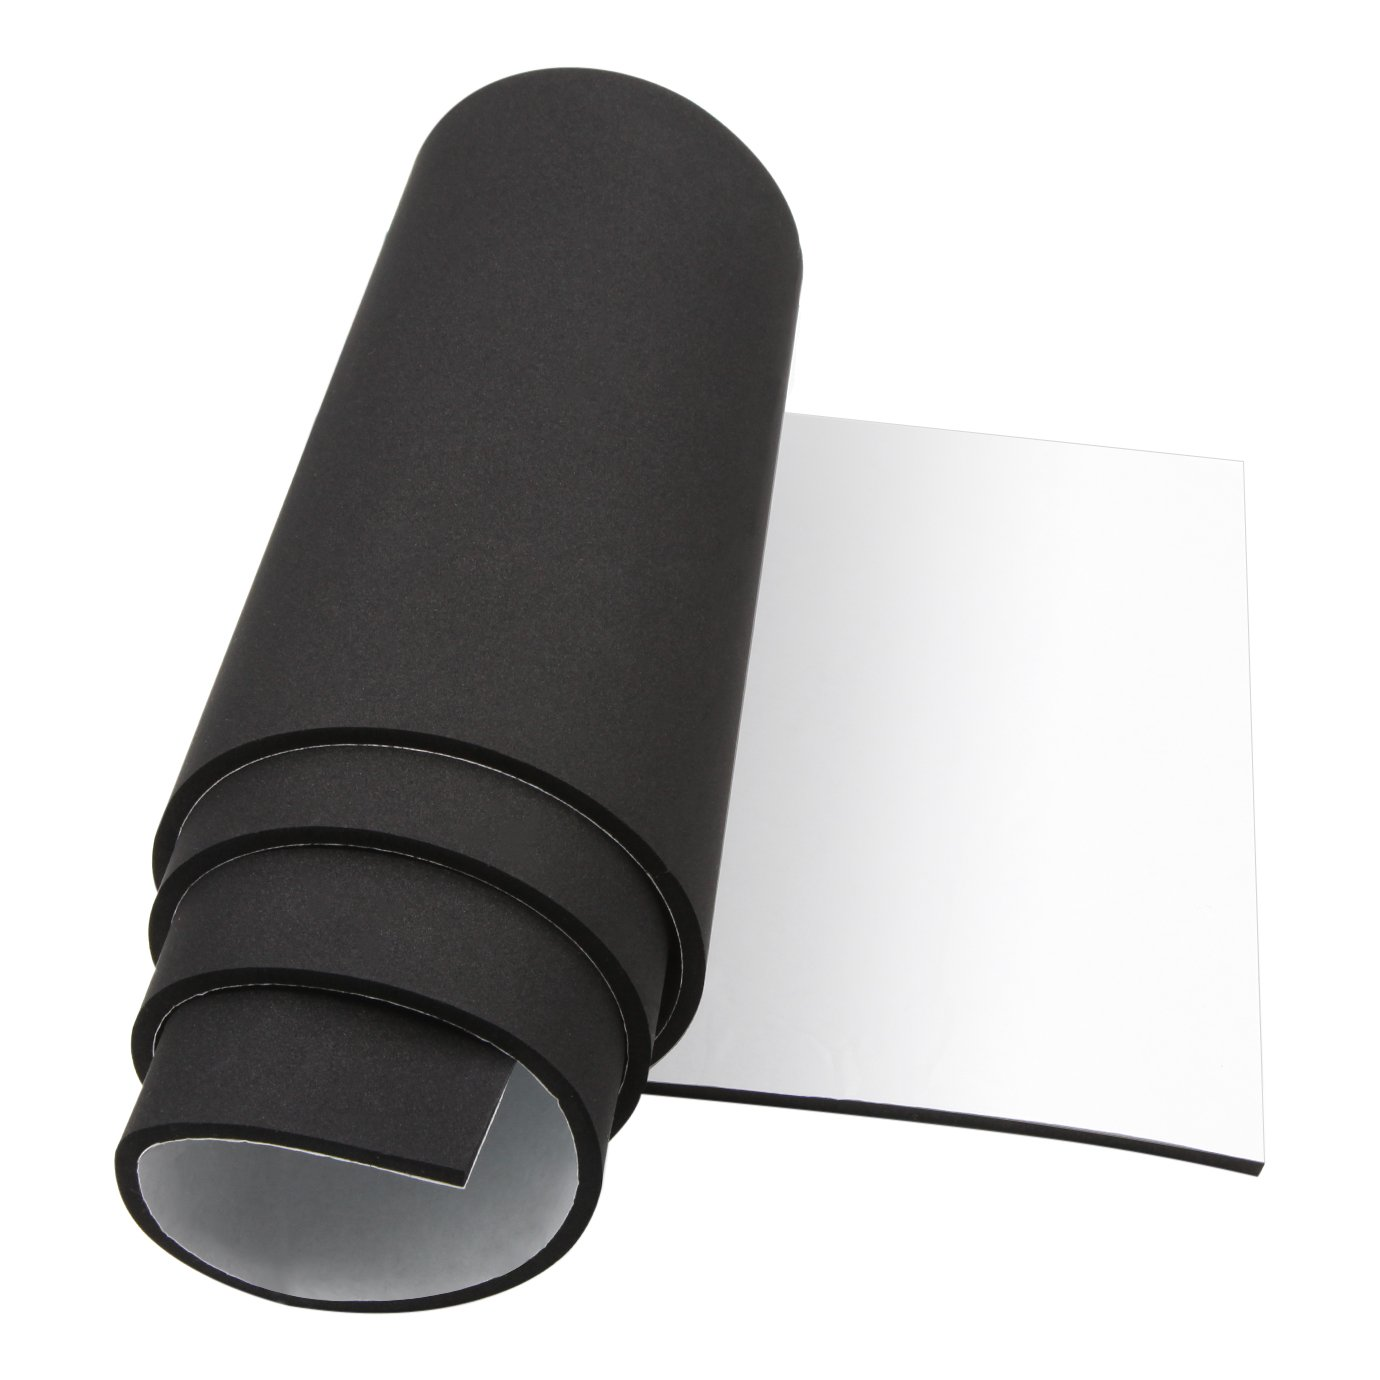 Foam Padding Roll >> Details About Neoprene Rubber Mat Foam Padding Roll Self Adhesive Weather Stripping Non Slip